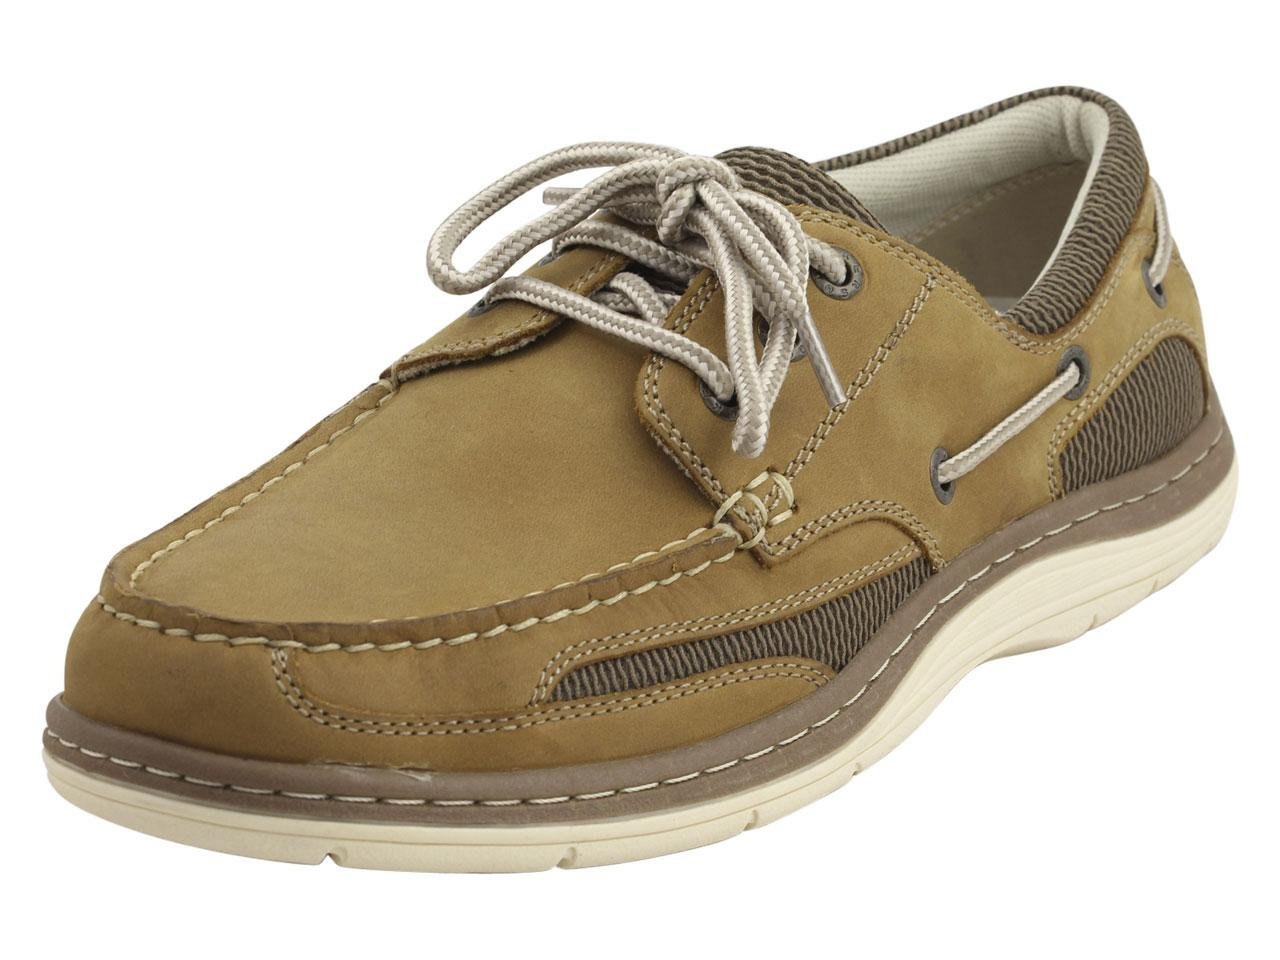 Image of Dockers Men's Lakeport Memory Foam Loafers Boat Shoes - Brown - 11 D(M) US